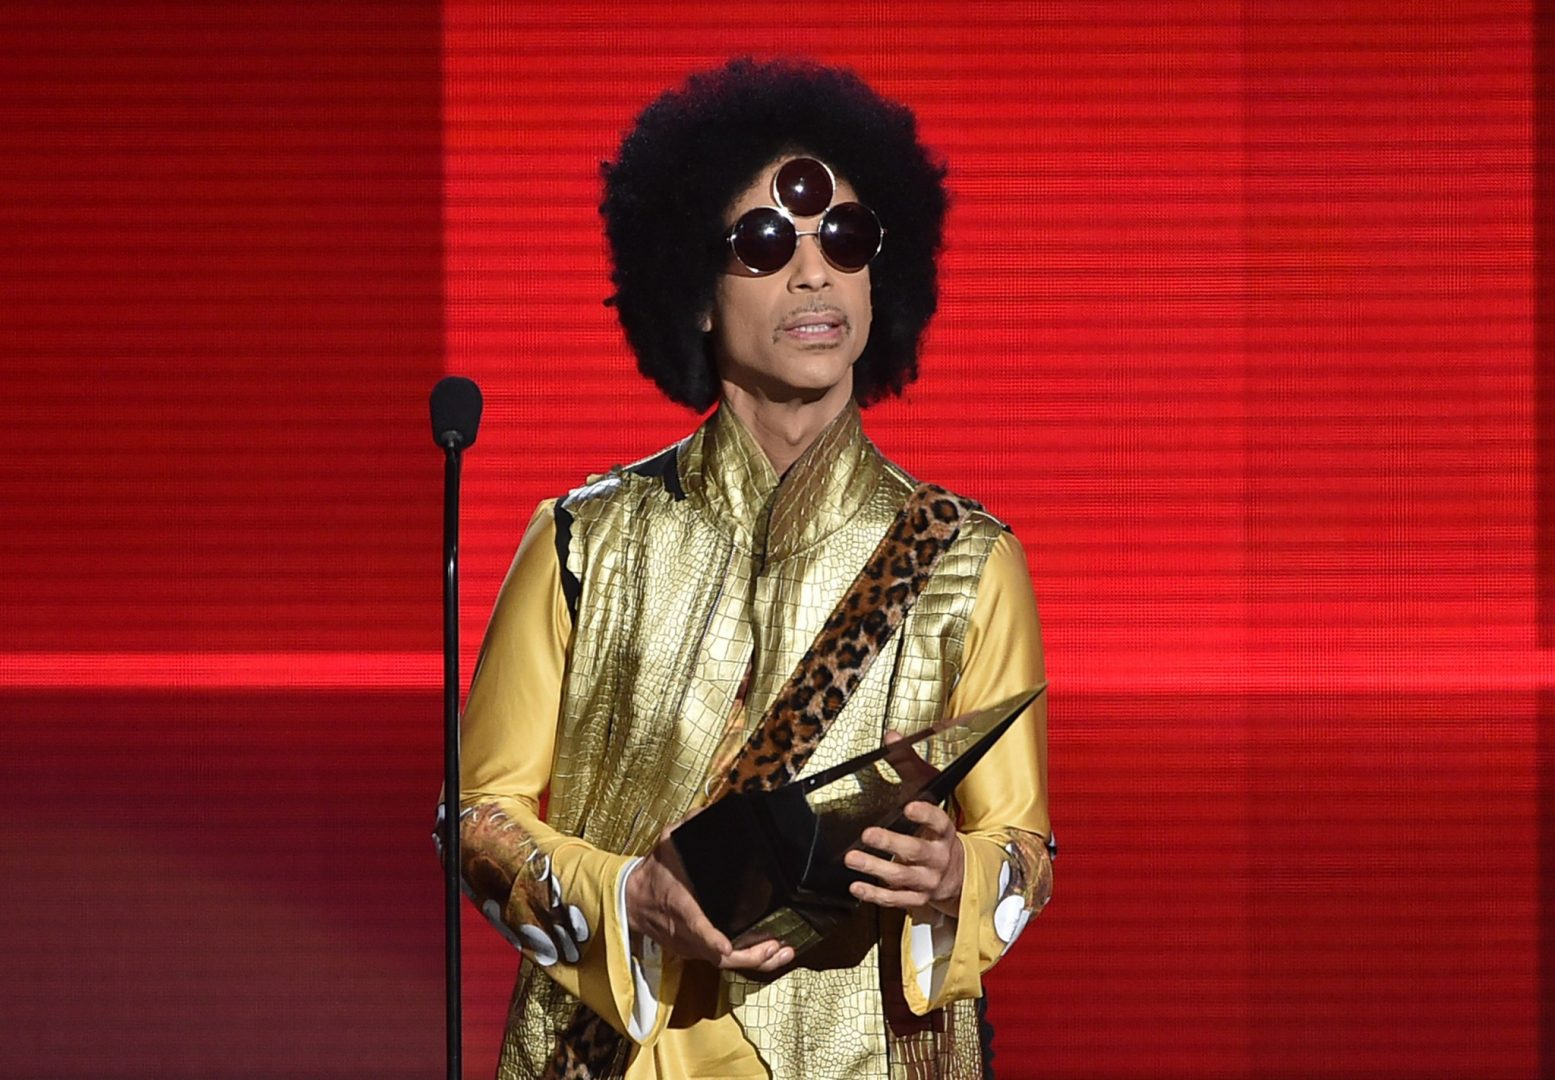 Is Prince set to play Isle Of Wight Festival?